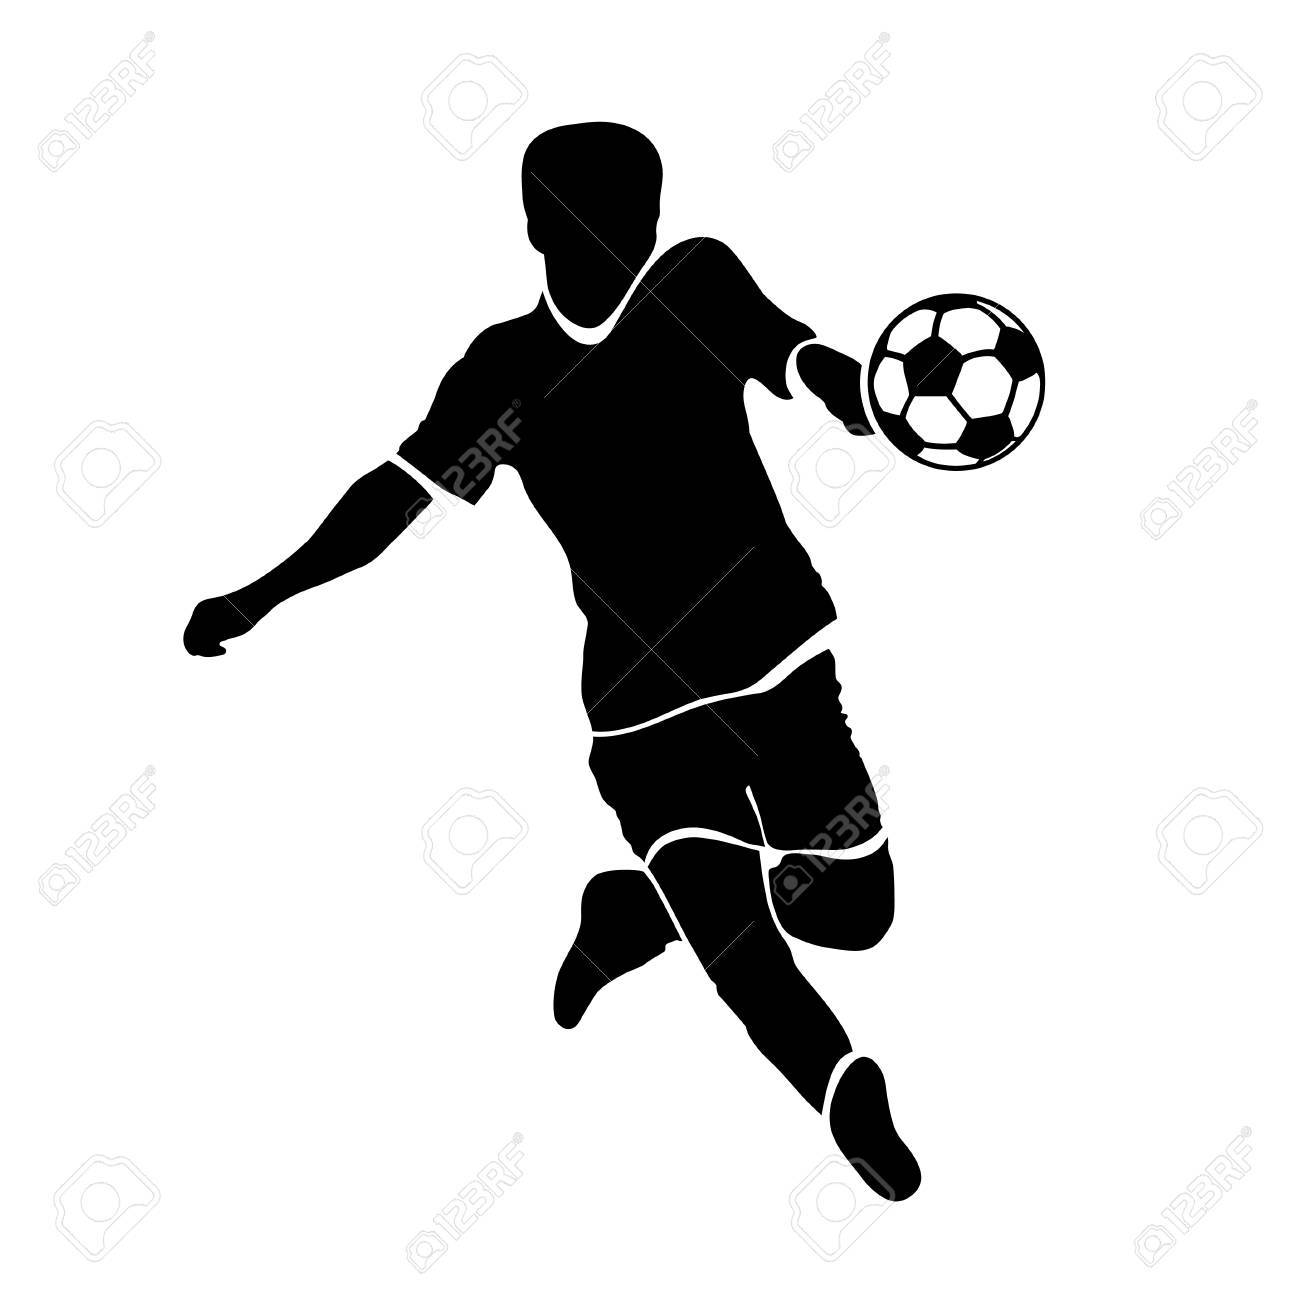 footballer silhouette black football player outline with a ball running and scoring goal